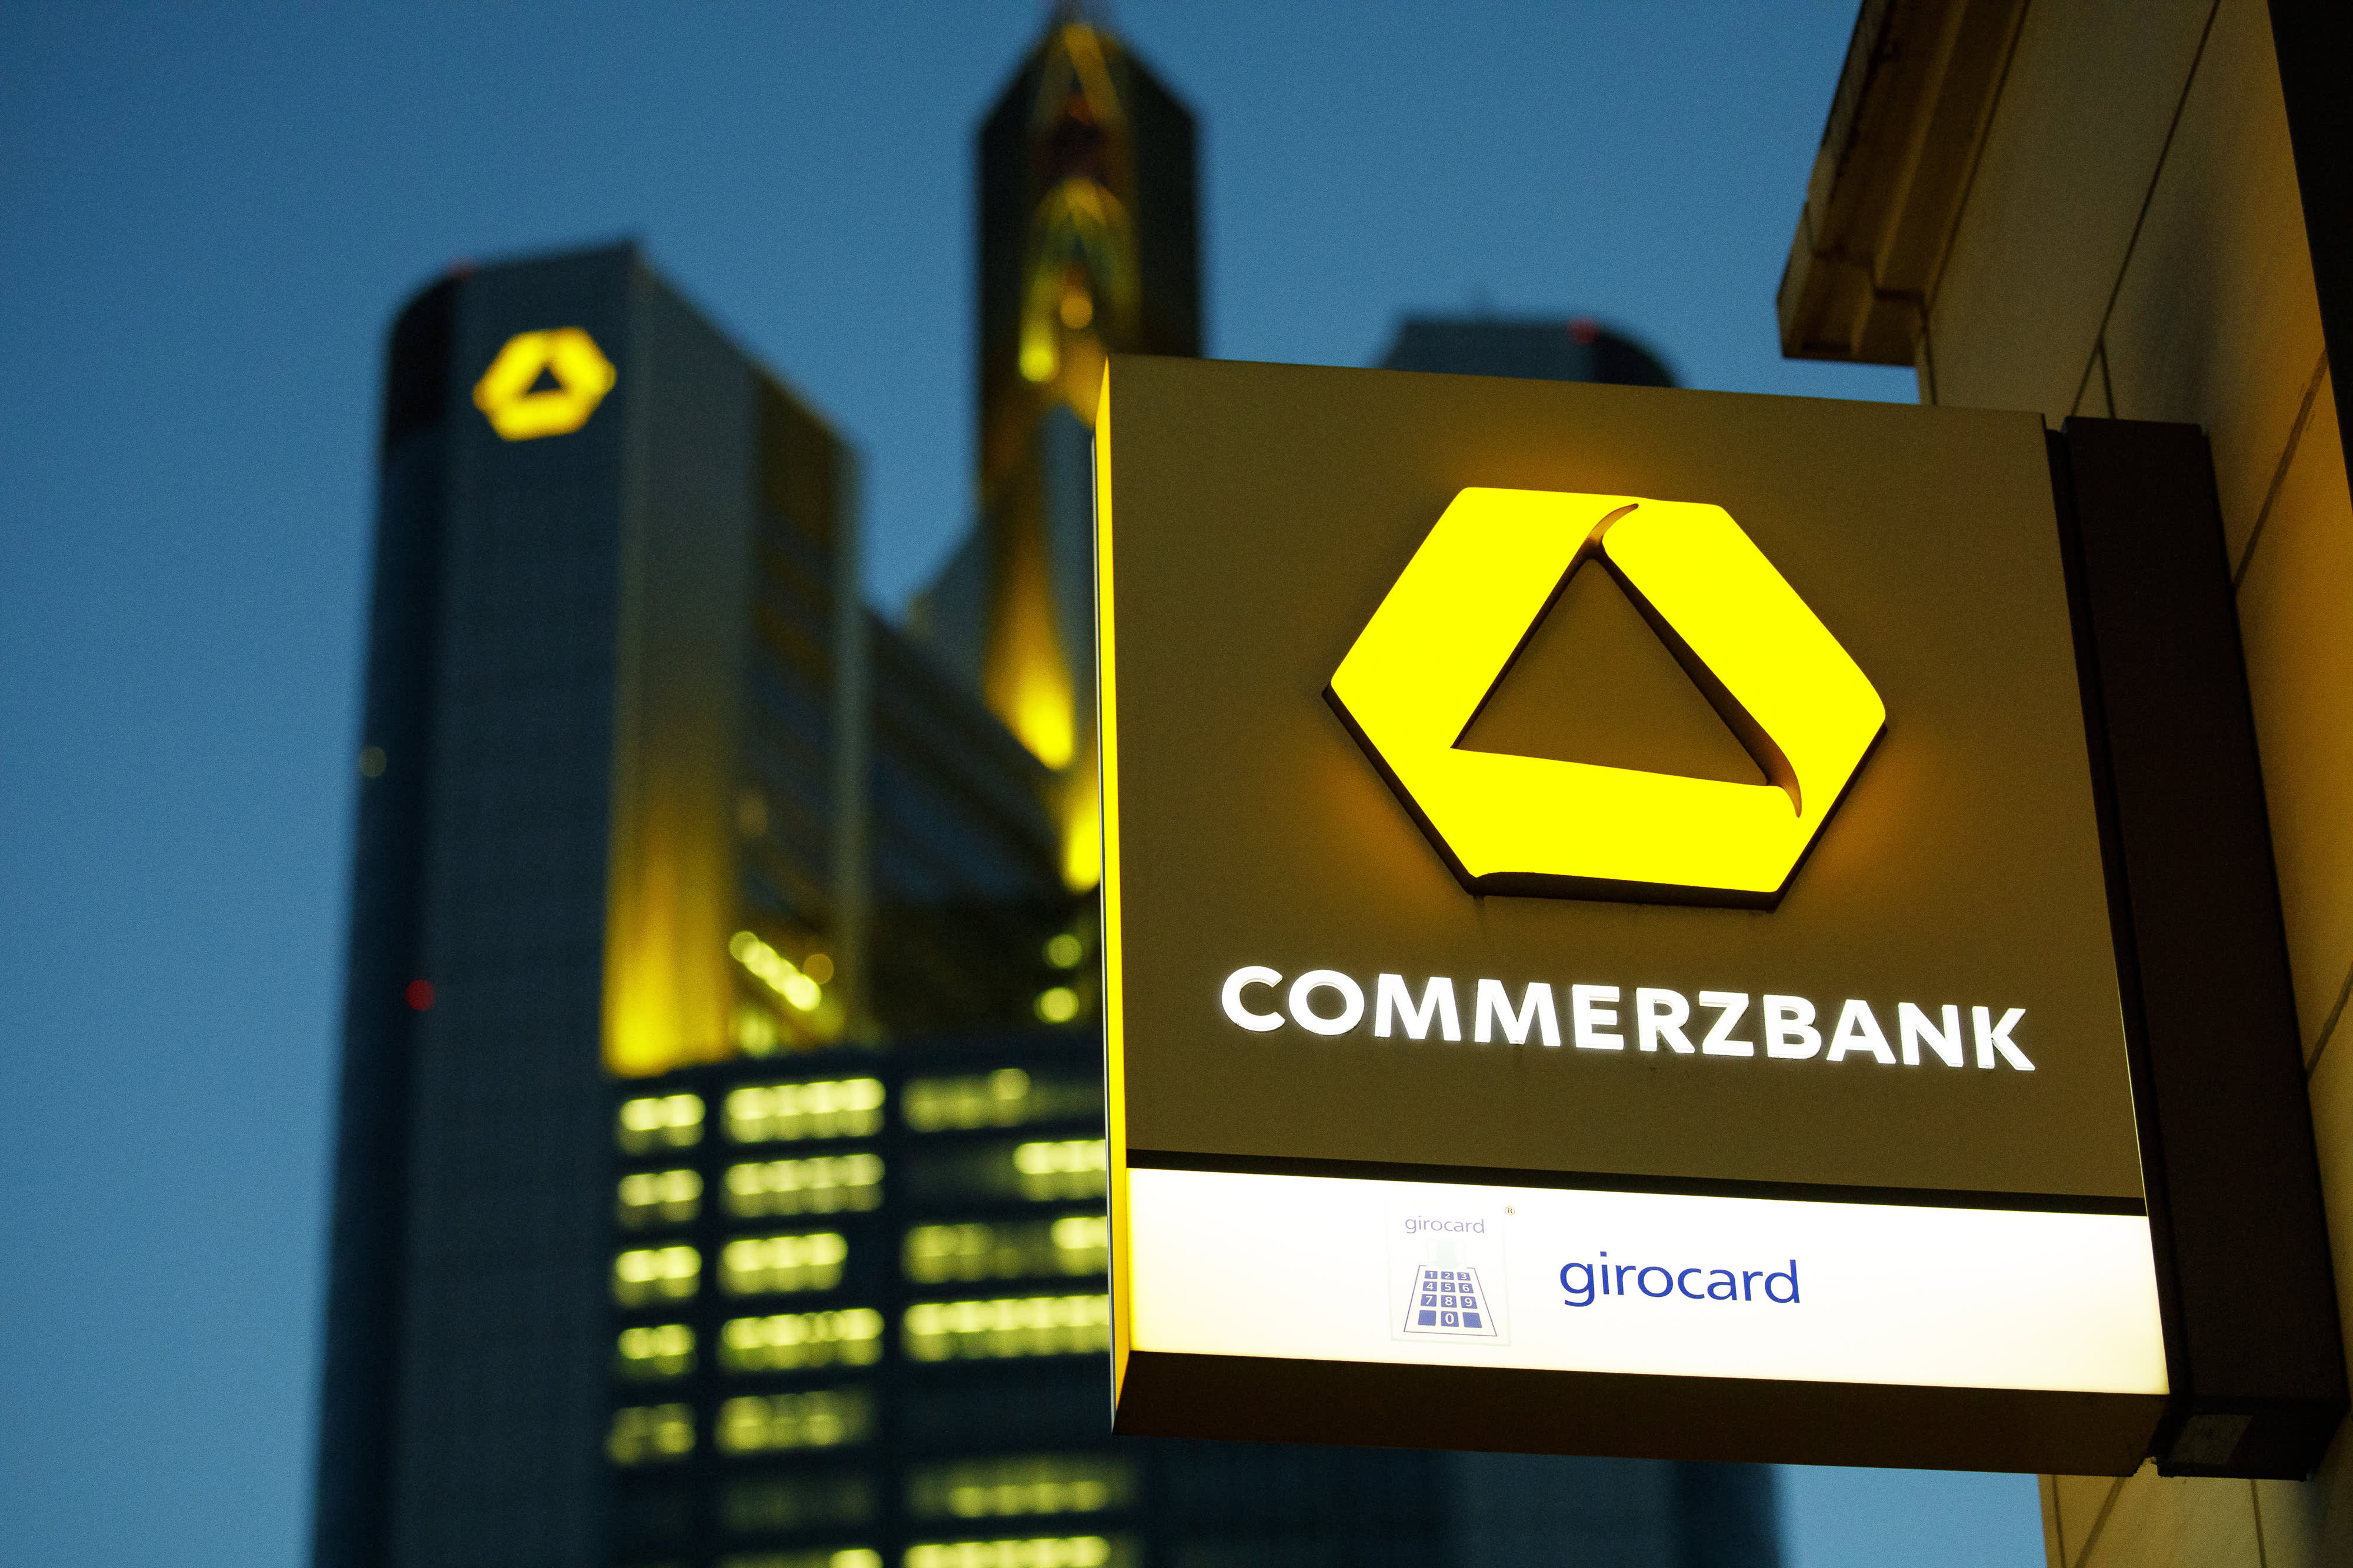 Commerzbank cuts revenue forecast as board approves overhaul